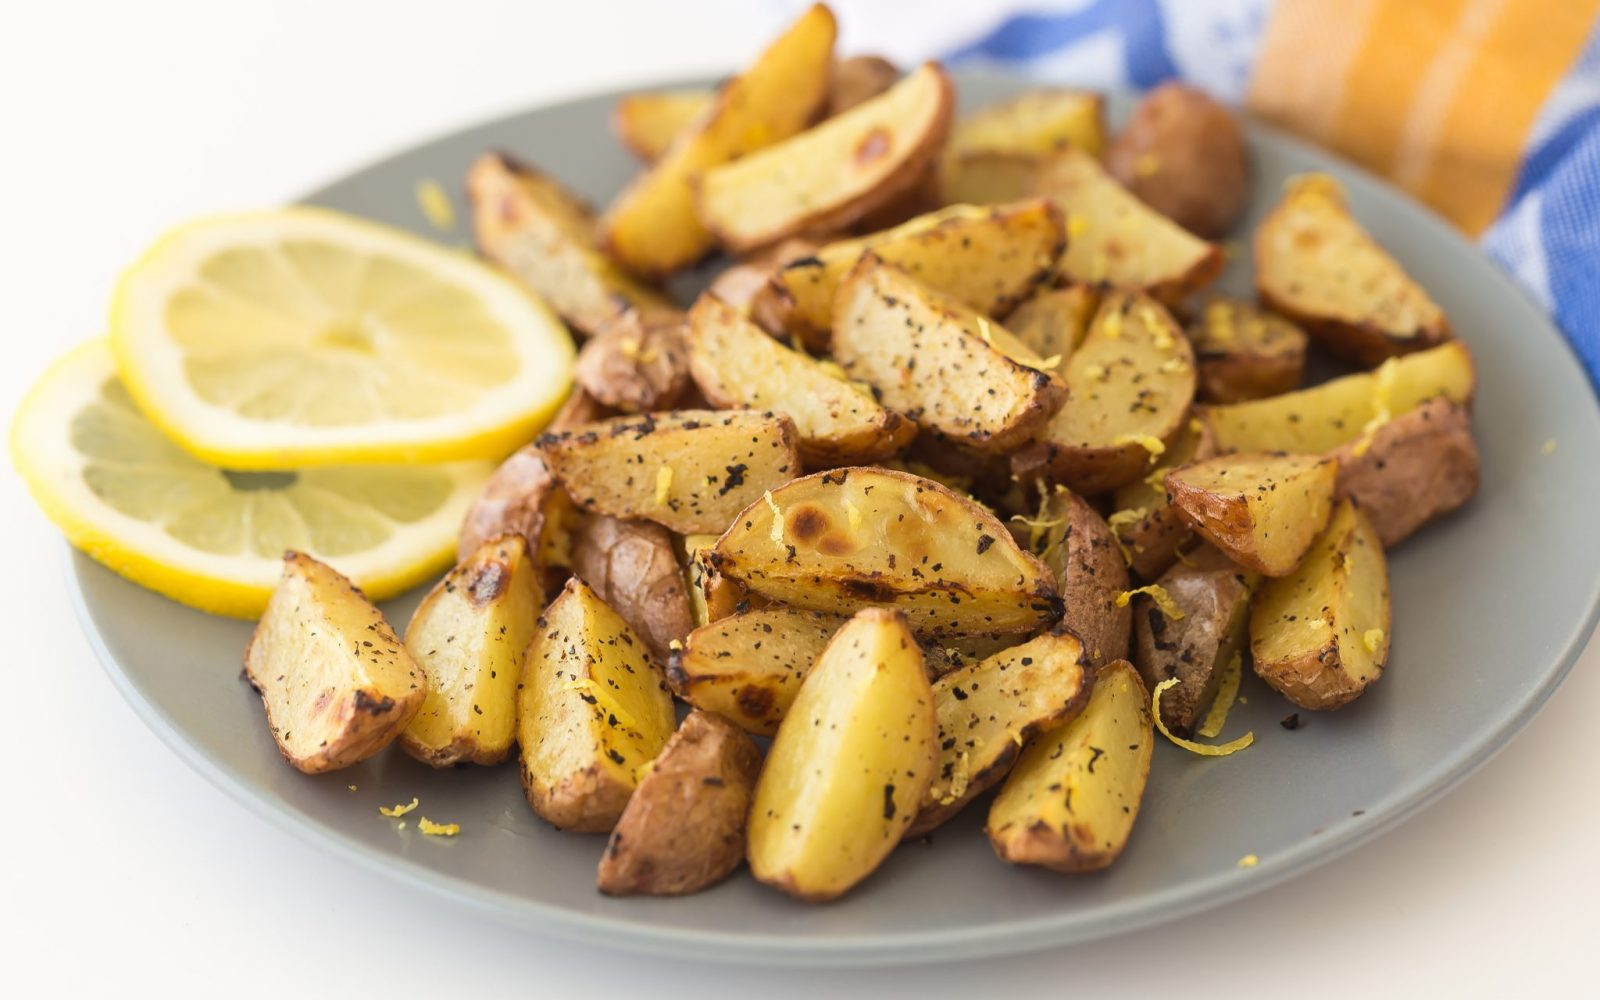 Potato Wedges With Lemon and Pepper